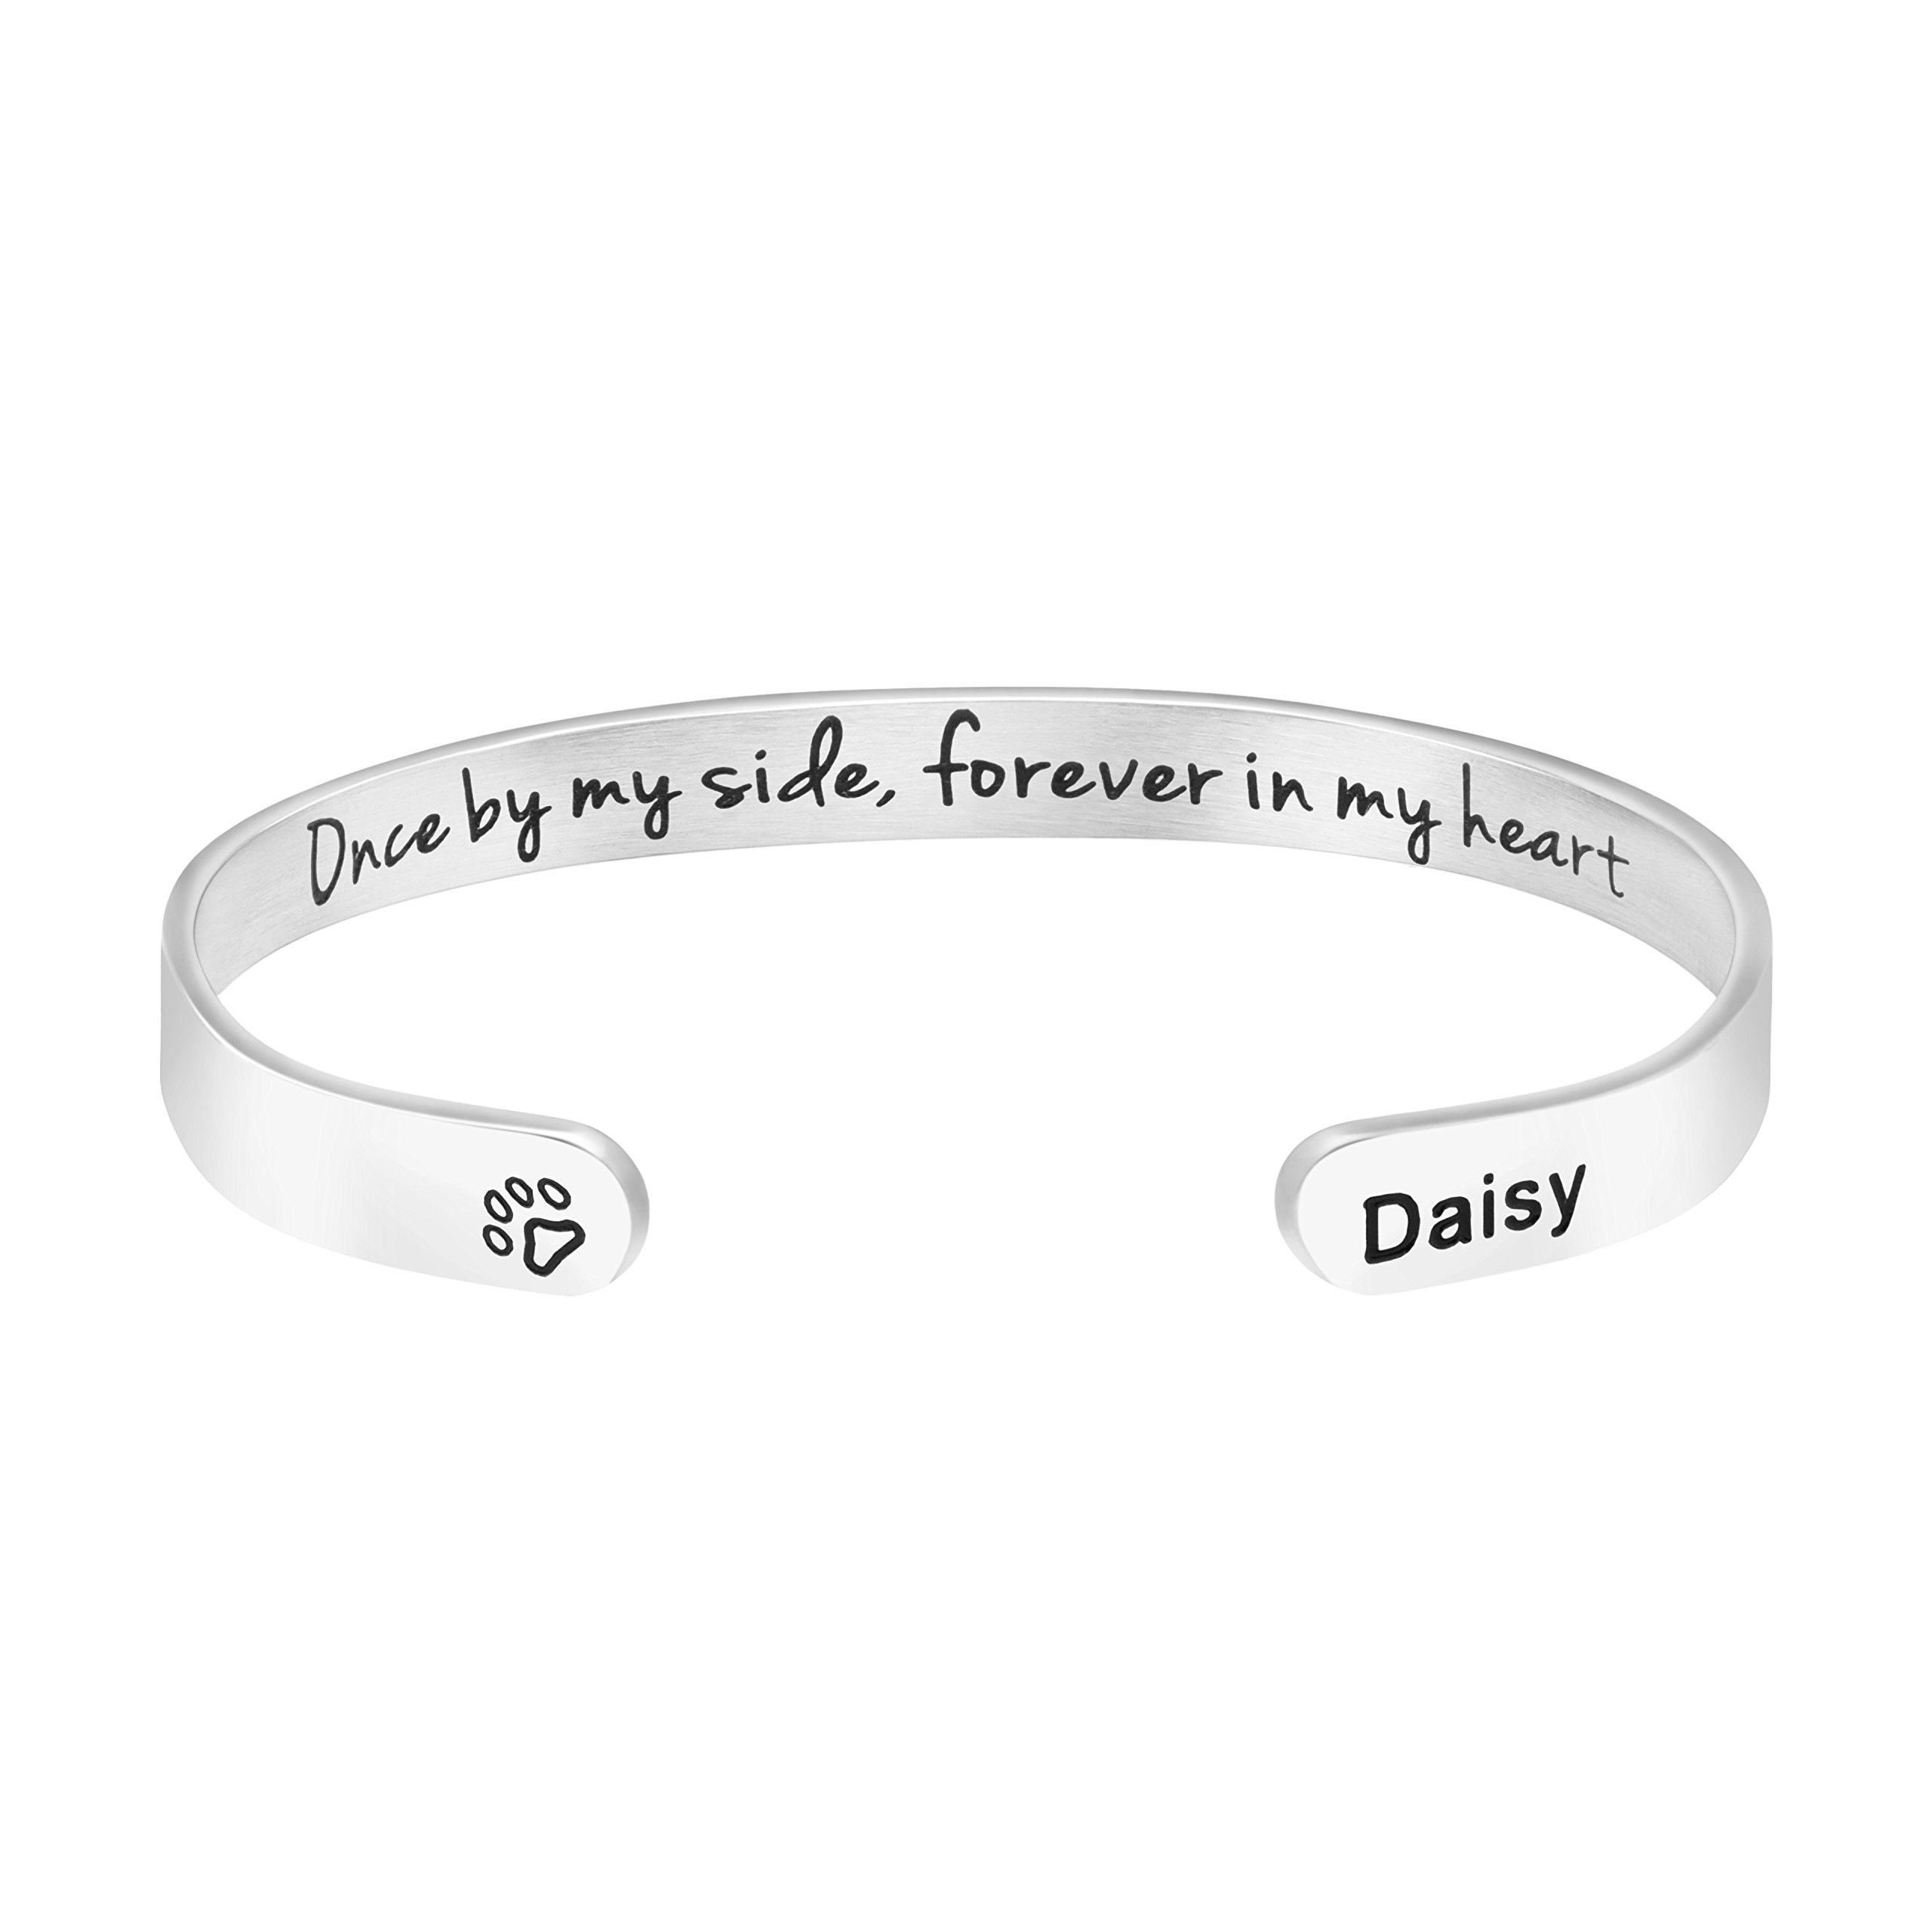 Awegift Pet Remembrance Gift Sympathy Cuff Bracelet Pets Loss Stainless Steel Bangle Engraved Dog Name Daisy